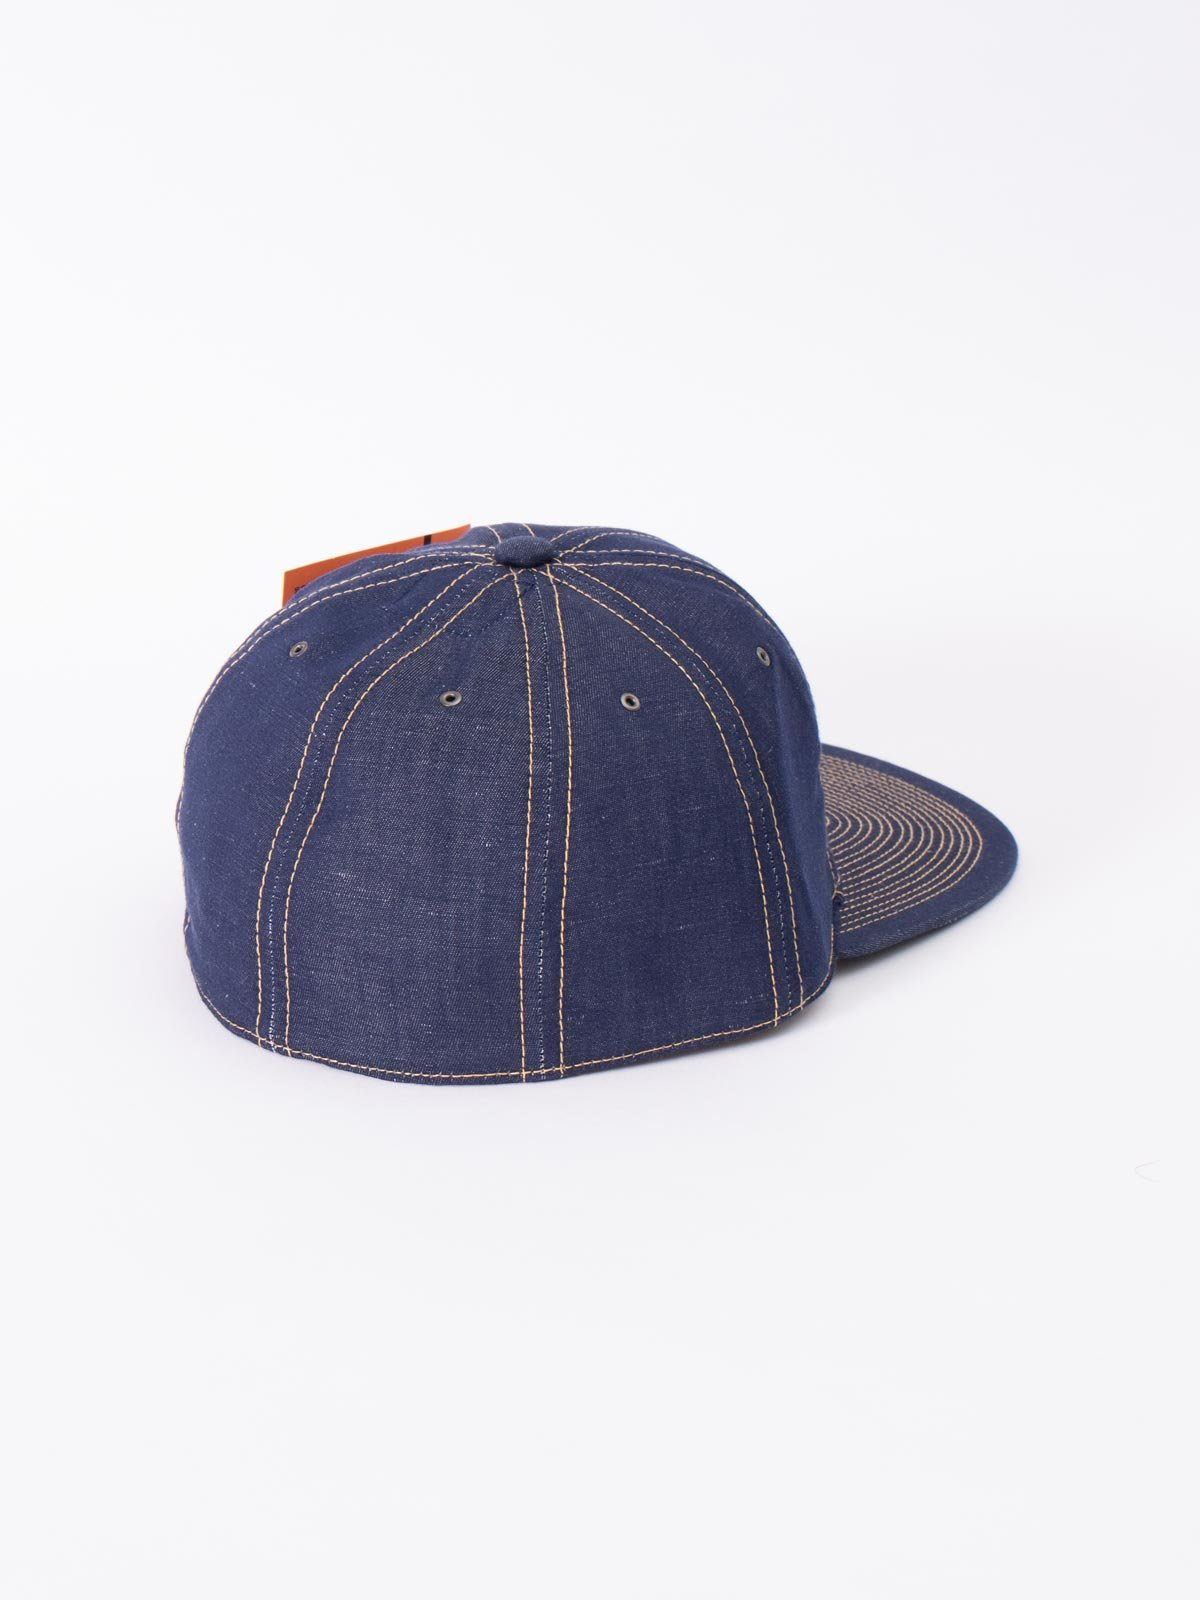 NAVY COTTON LINEN CAP - Image 2